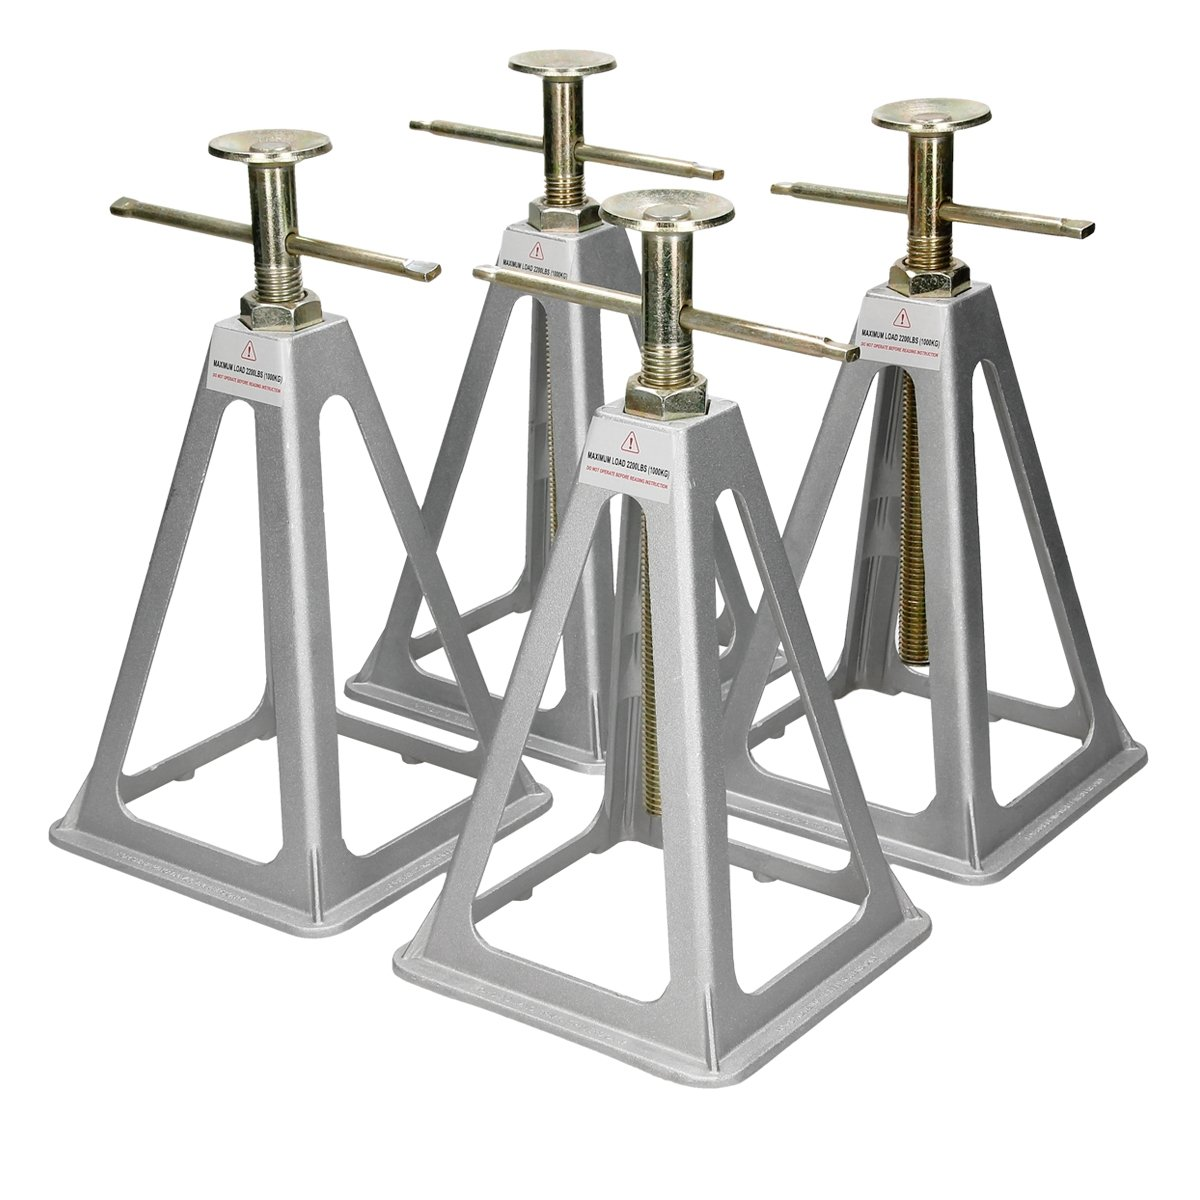 ECD-Germany 4x Caravan Axle Stands Stabilising Jacks Static SupportAluminium Leveller Floor Ratchet 4000kg Additional Security ECD Germany